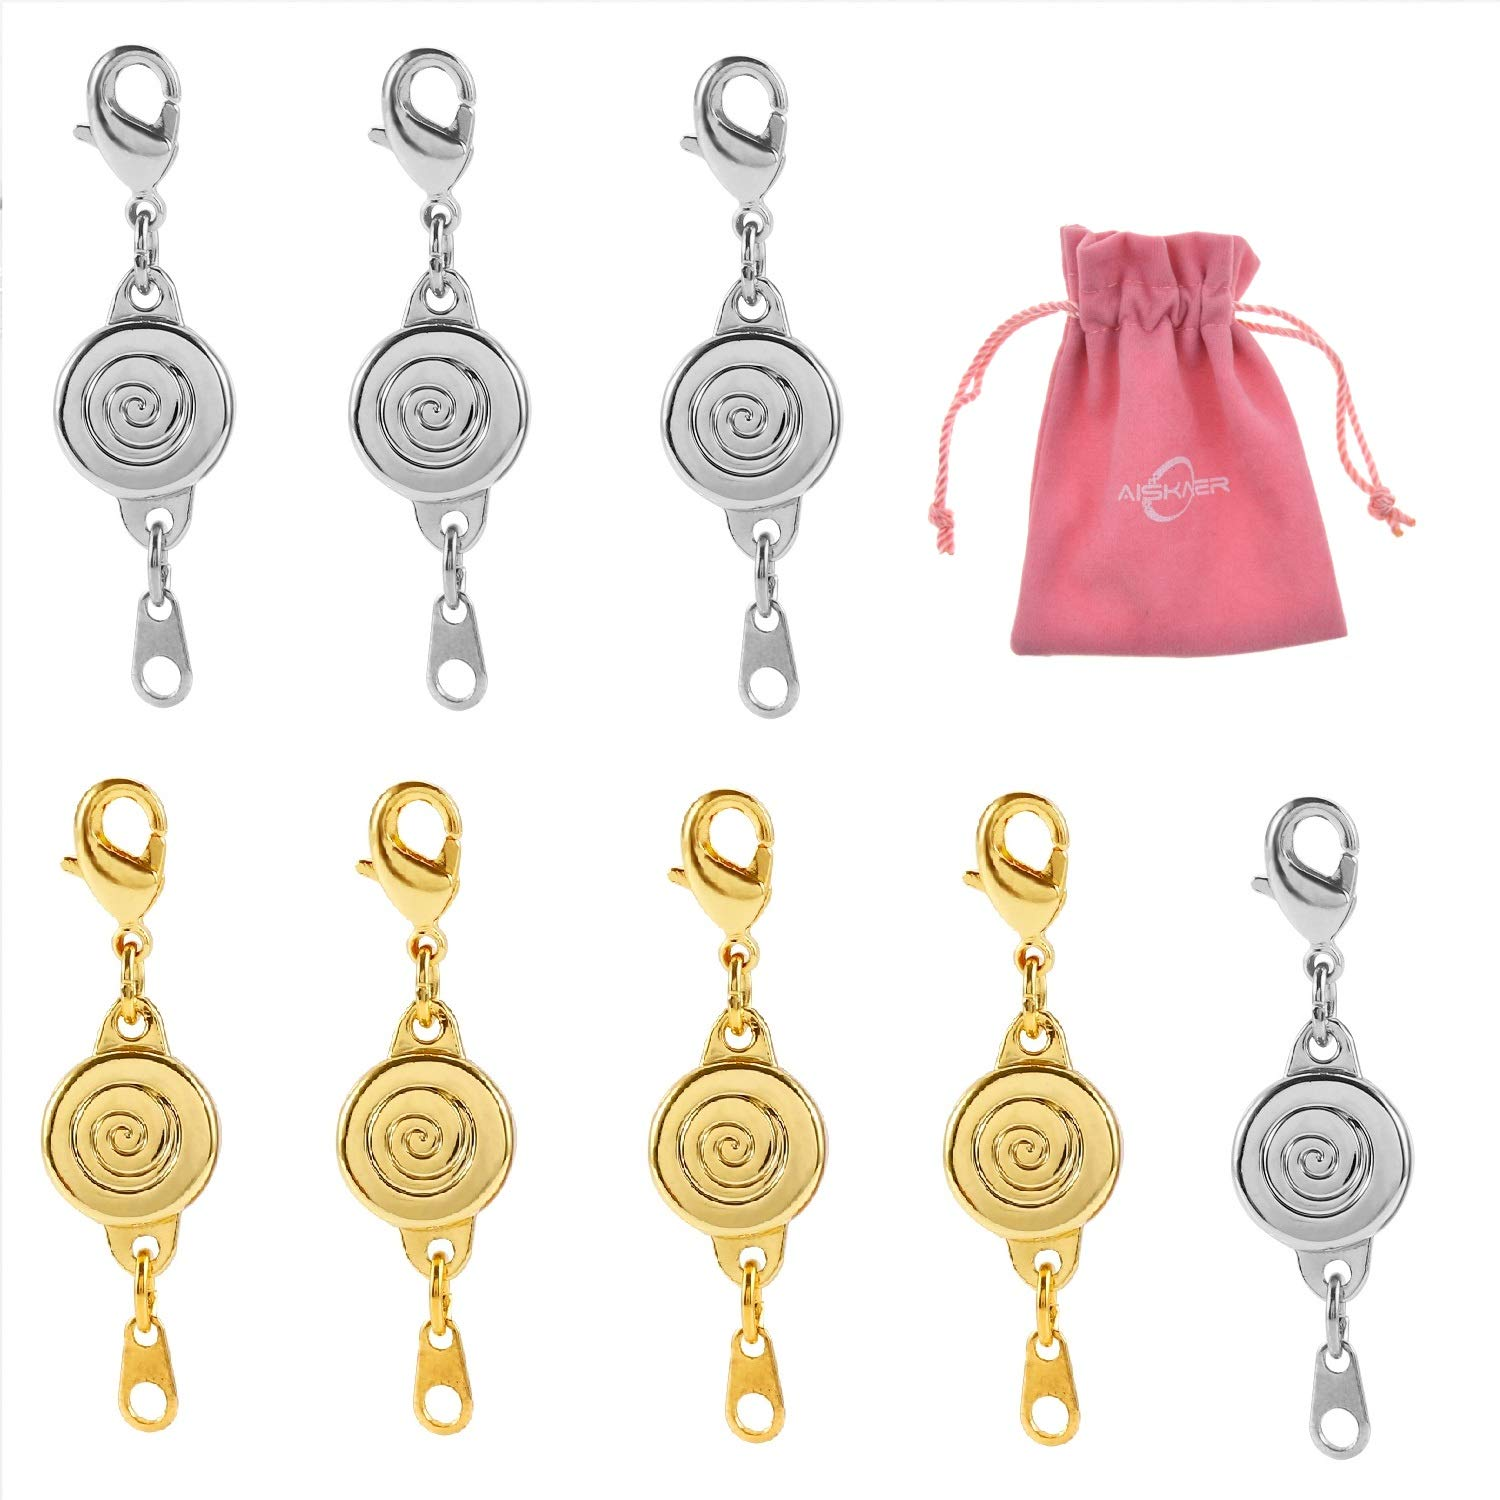 4 Silver+4 Gold Aiskaer 8 pcs Magnetic Necklace Clasp Extender Gold and Silver Color Tone for Jewelry Bracelet